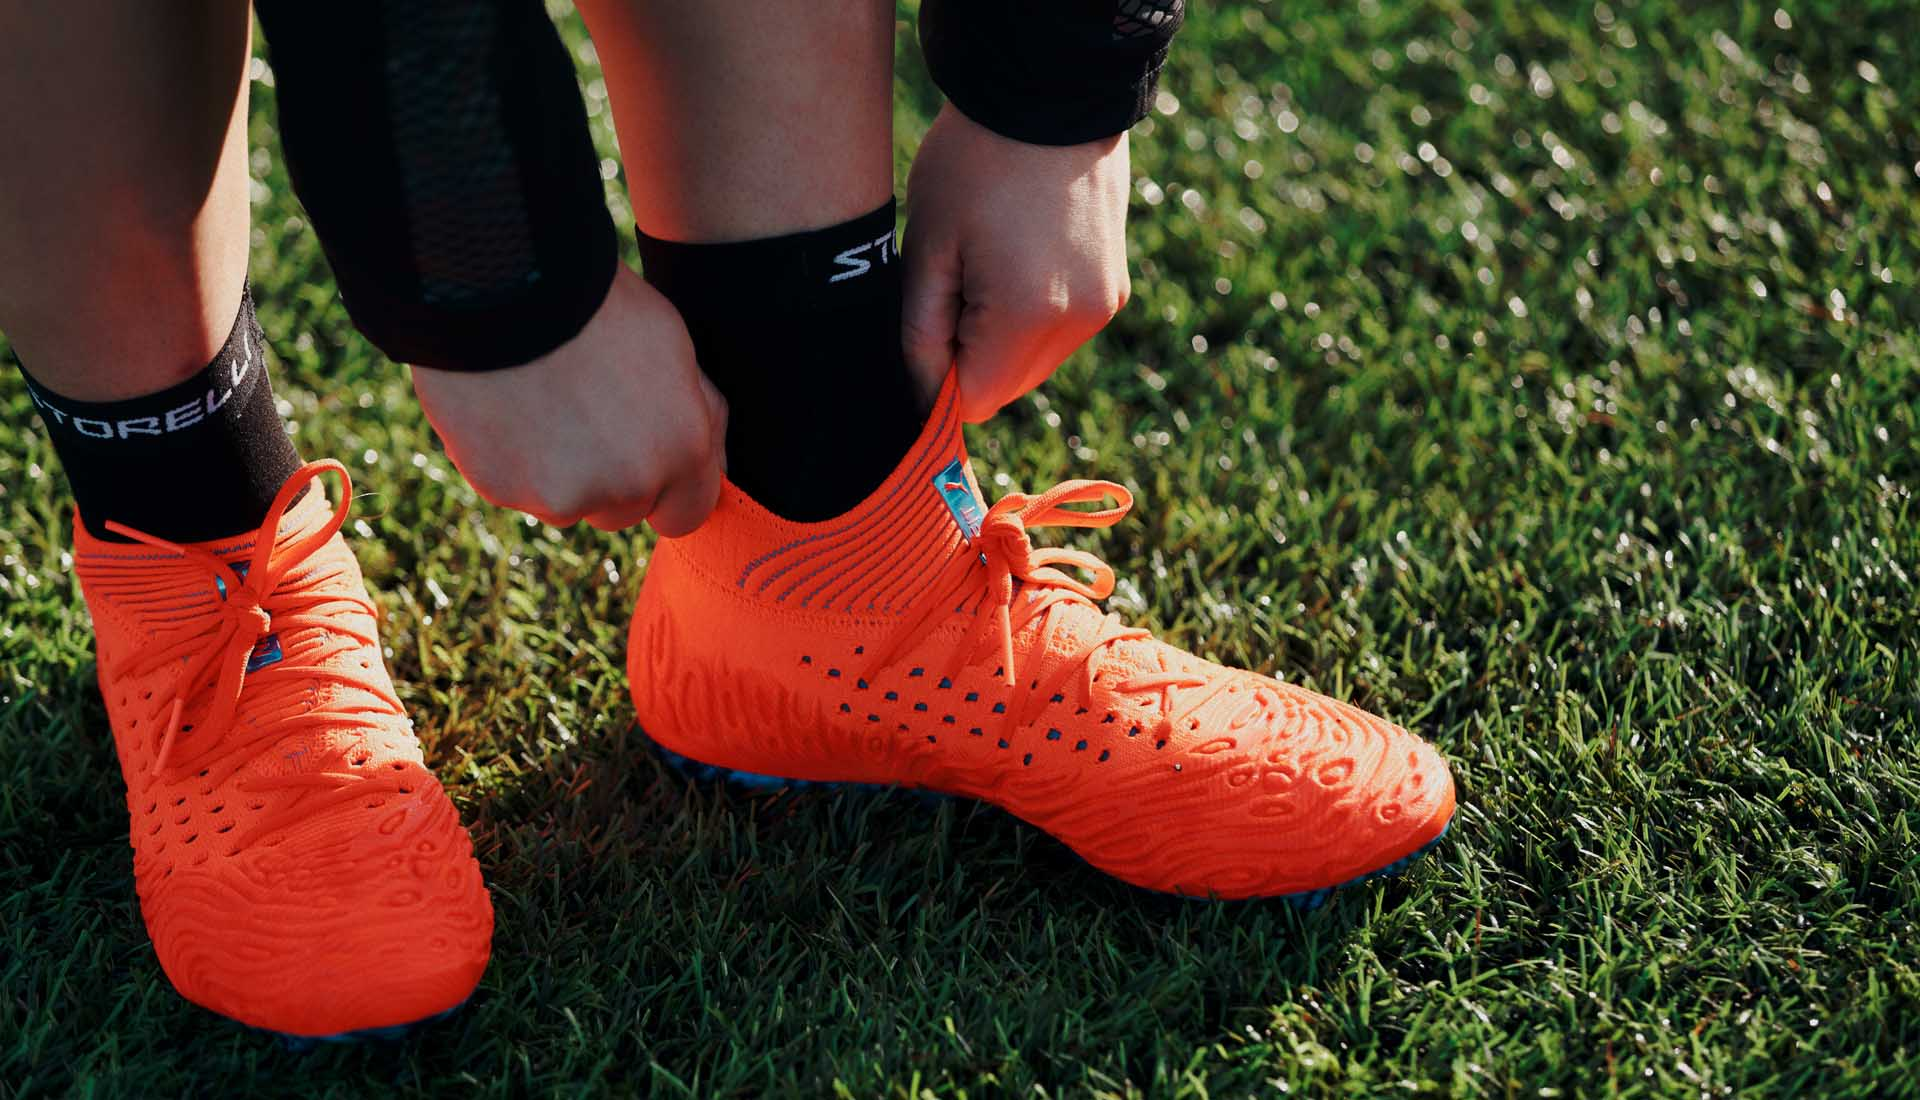 Laced Up: PUMA Future 19.1 Review - SoccerBible